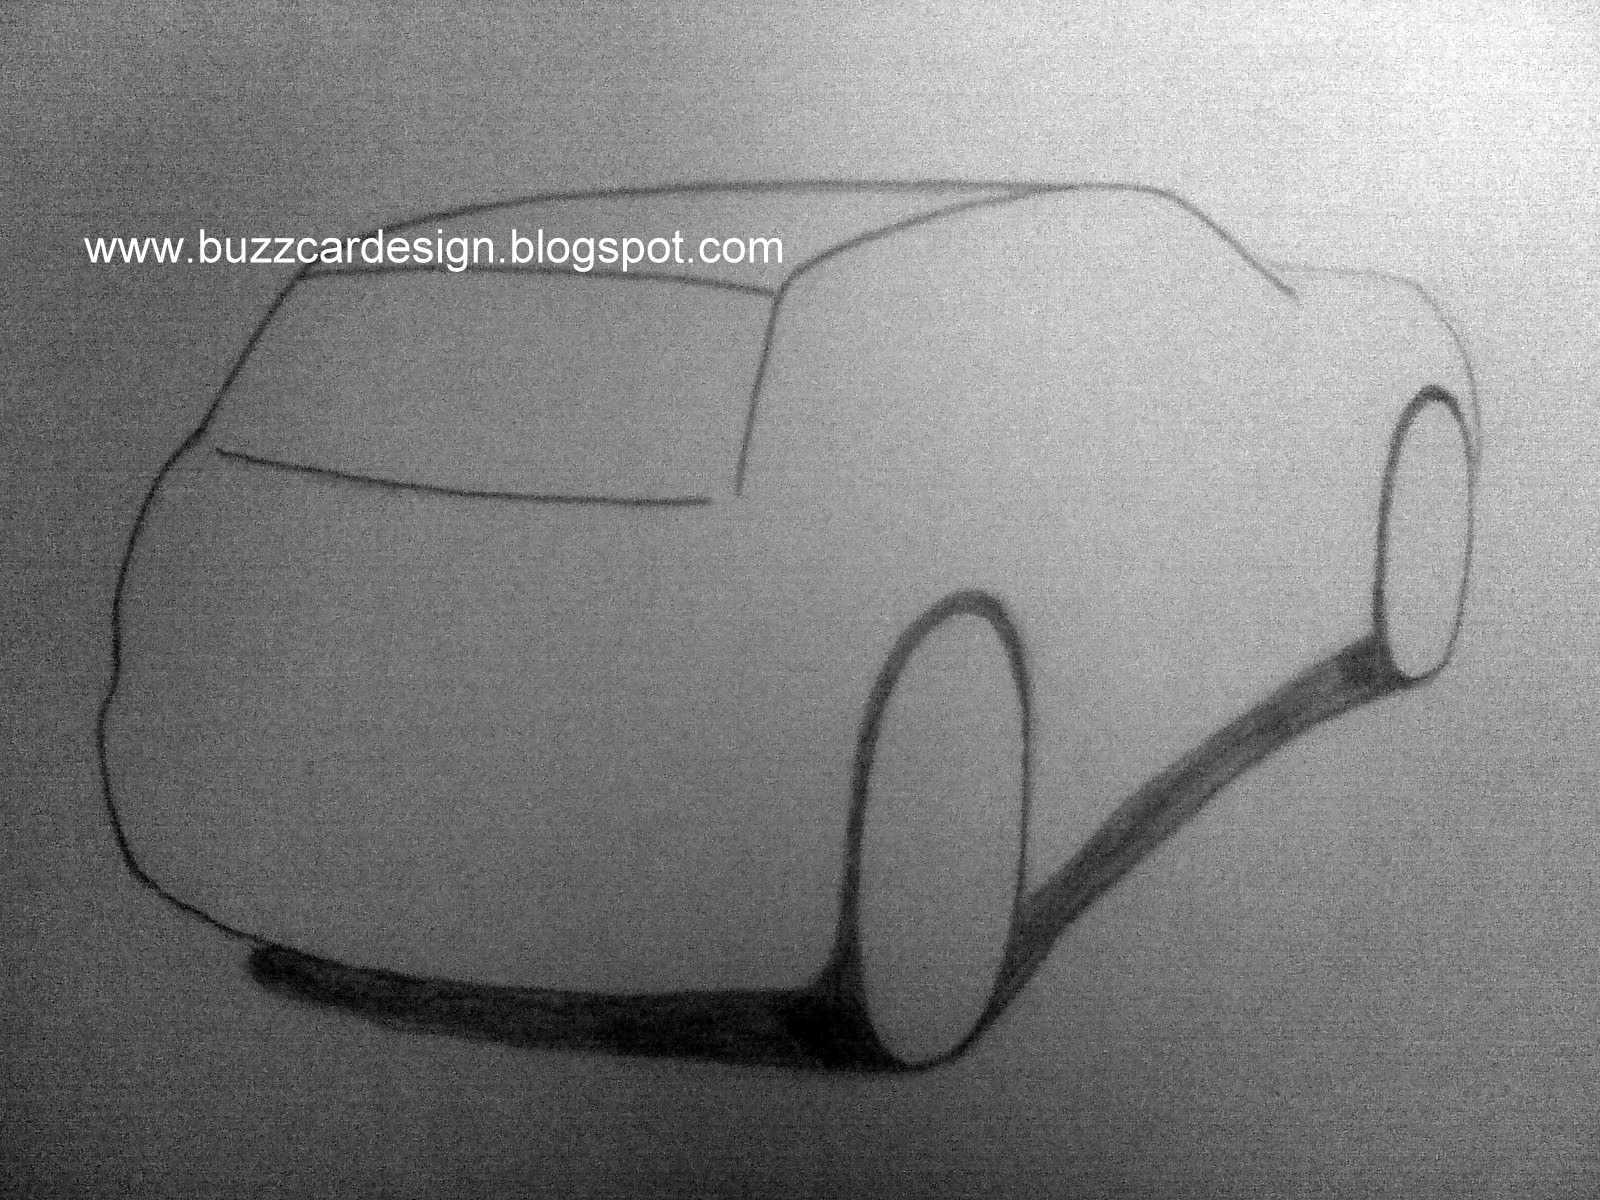 Buzyke Car Design: THE BEST STEPS TO TAKE WHEN DOING A CAR SKETCH.